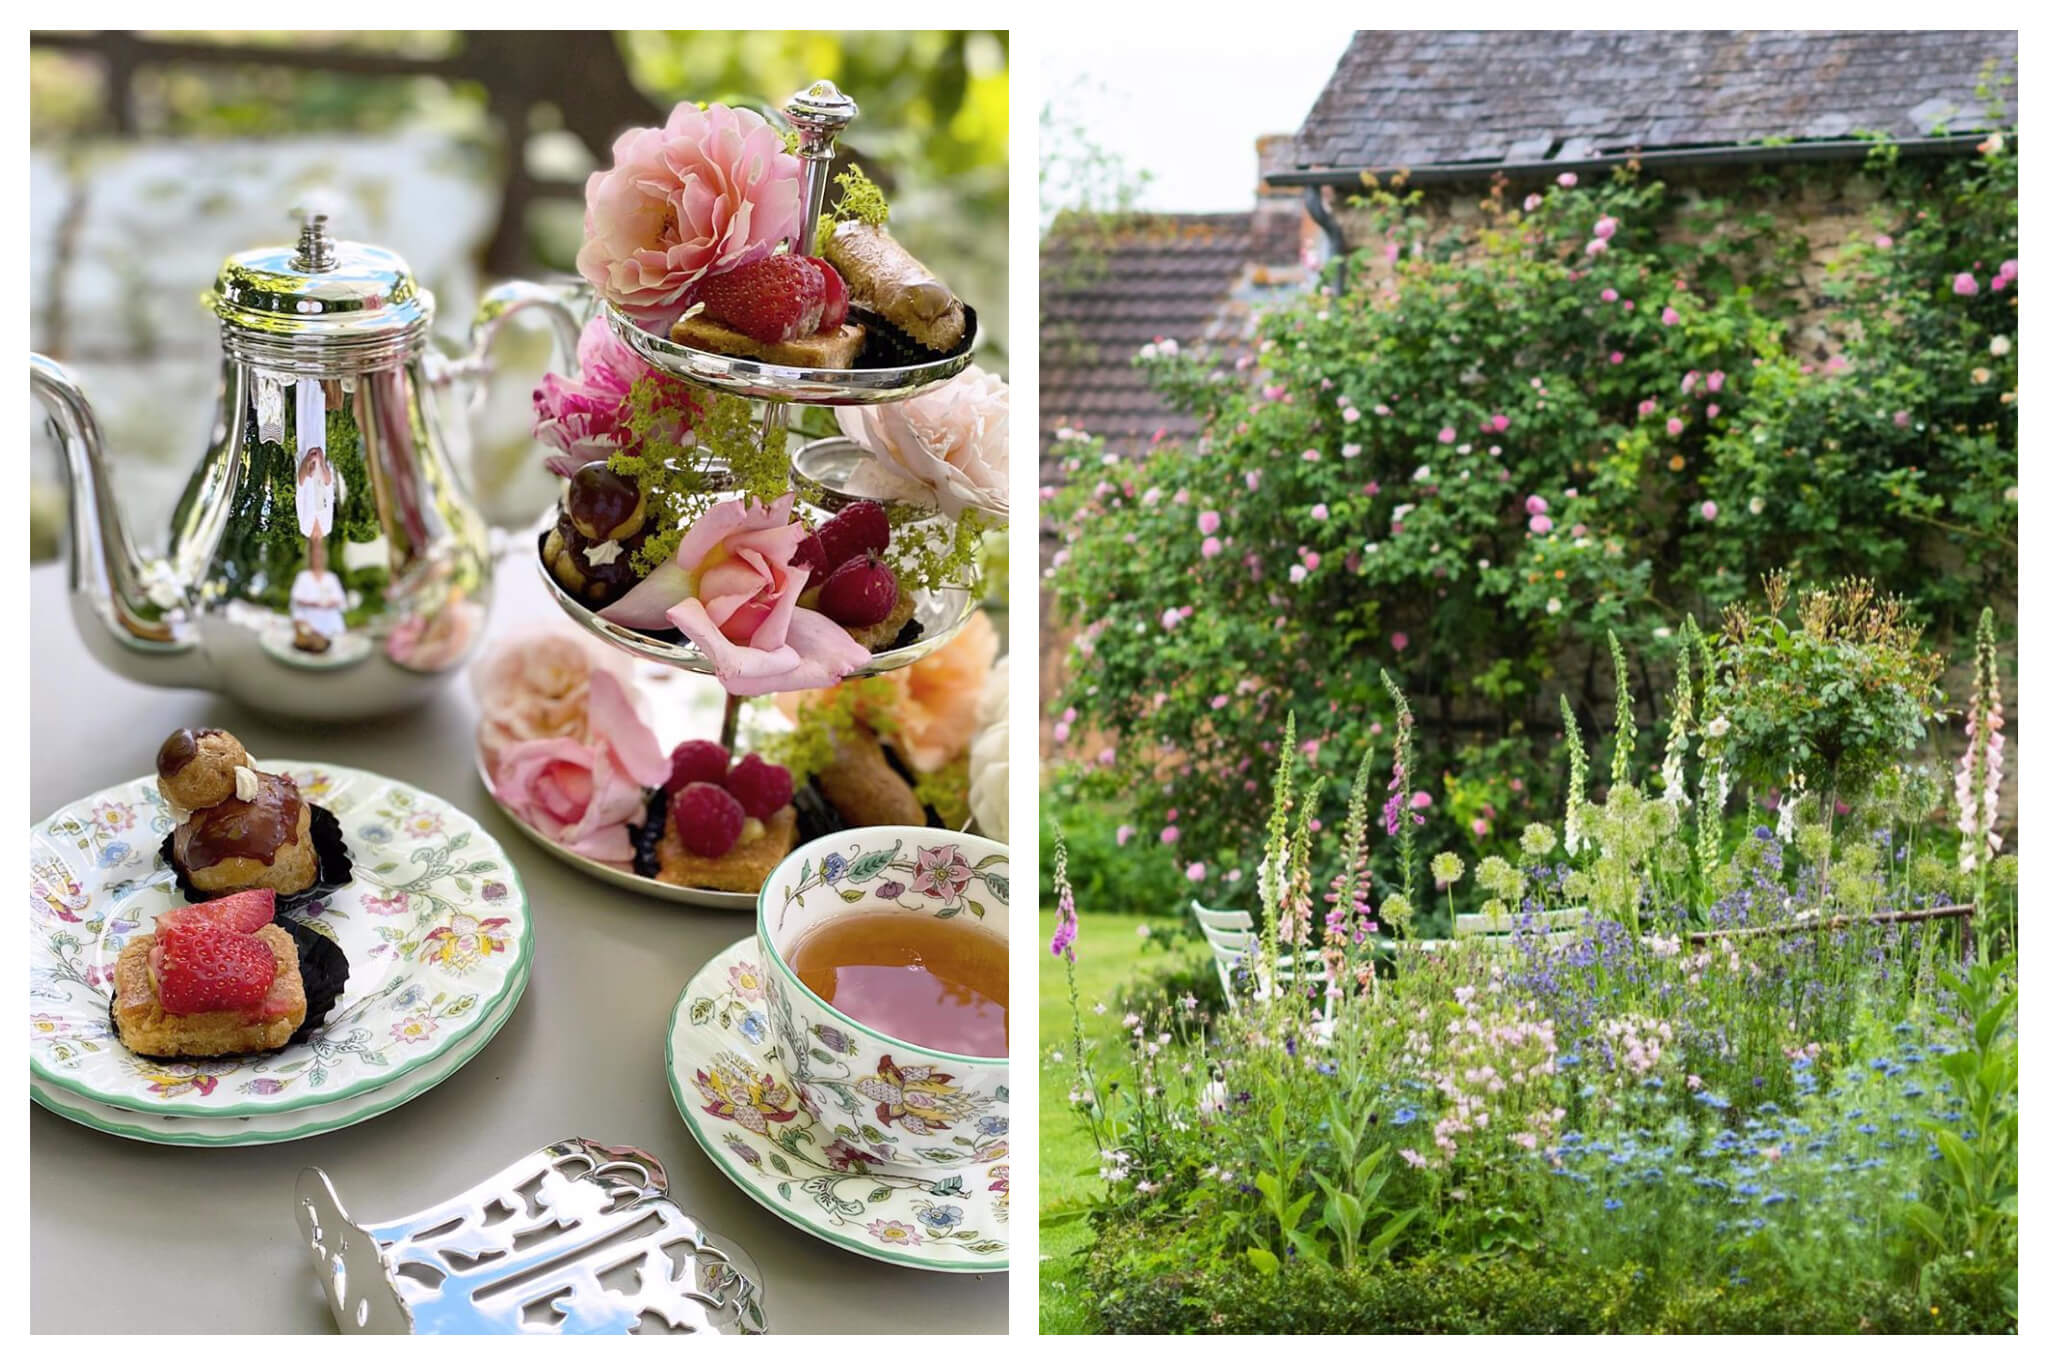 Left, afternoon tea with cakes. Right, beautiful flowery gardens in Normandy.